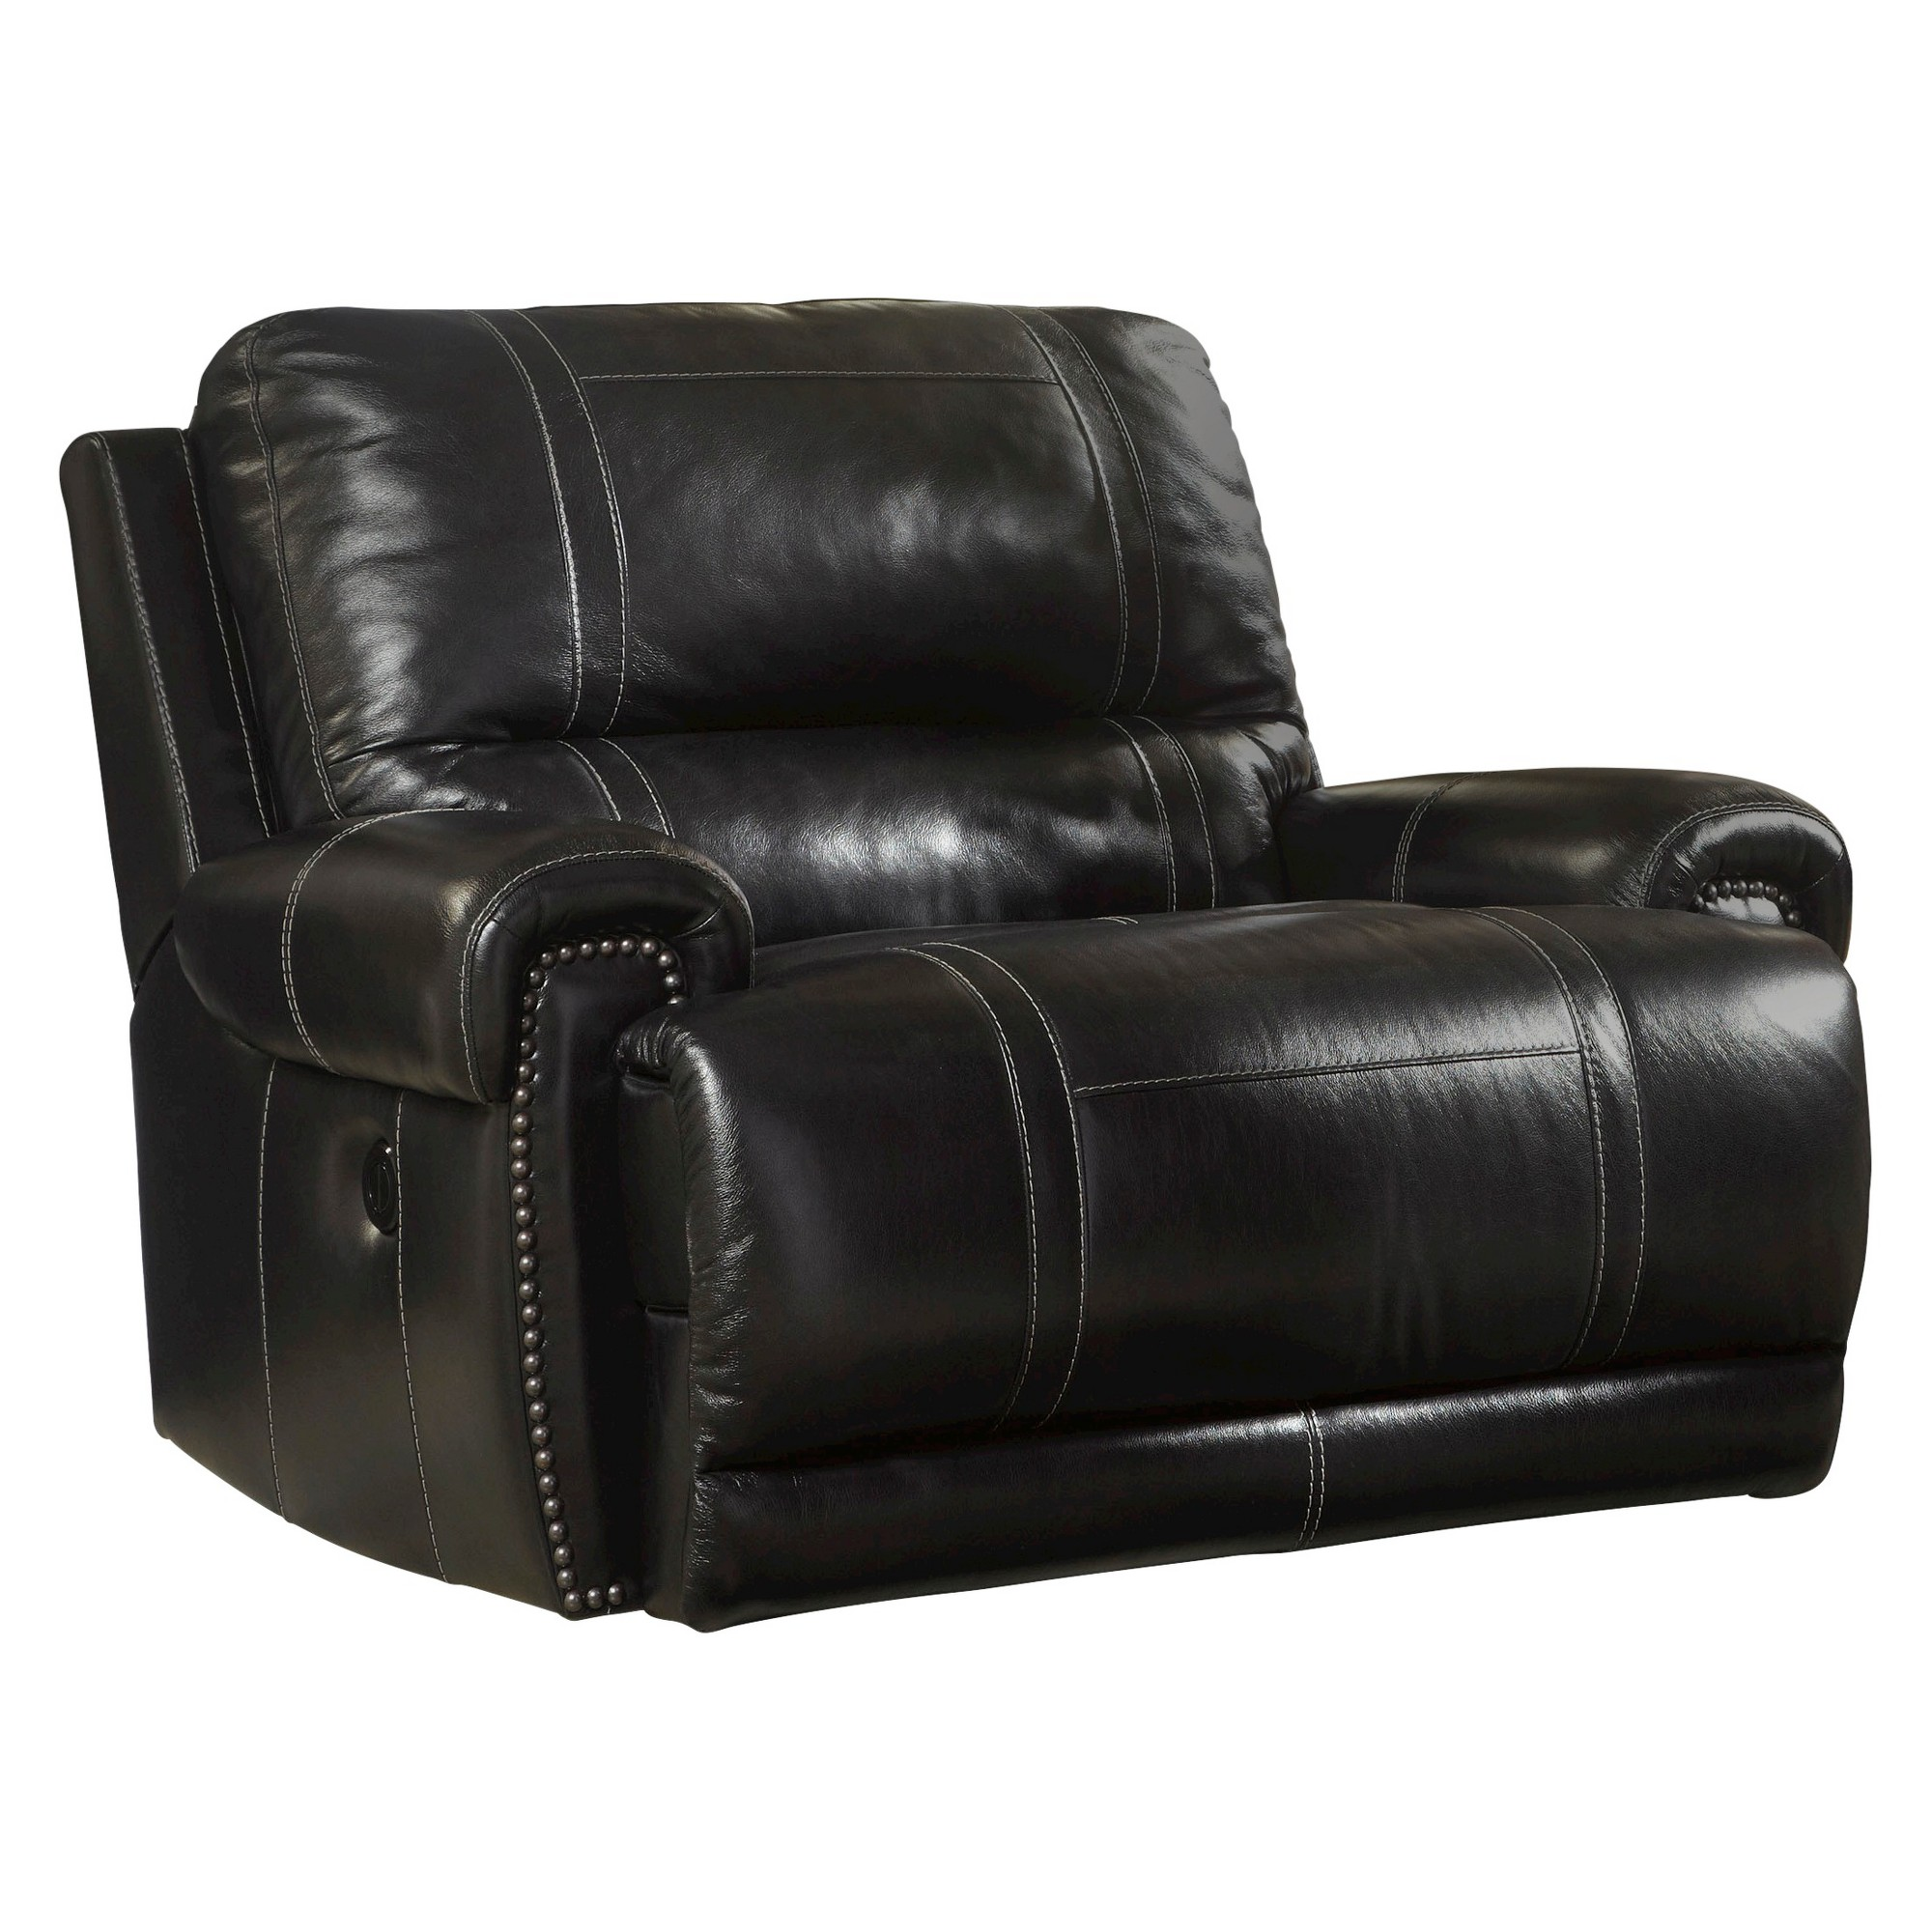 Paron Zero Wall Wide Seat Recliner Antique Signature Design By Ashley Black Wide Seat